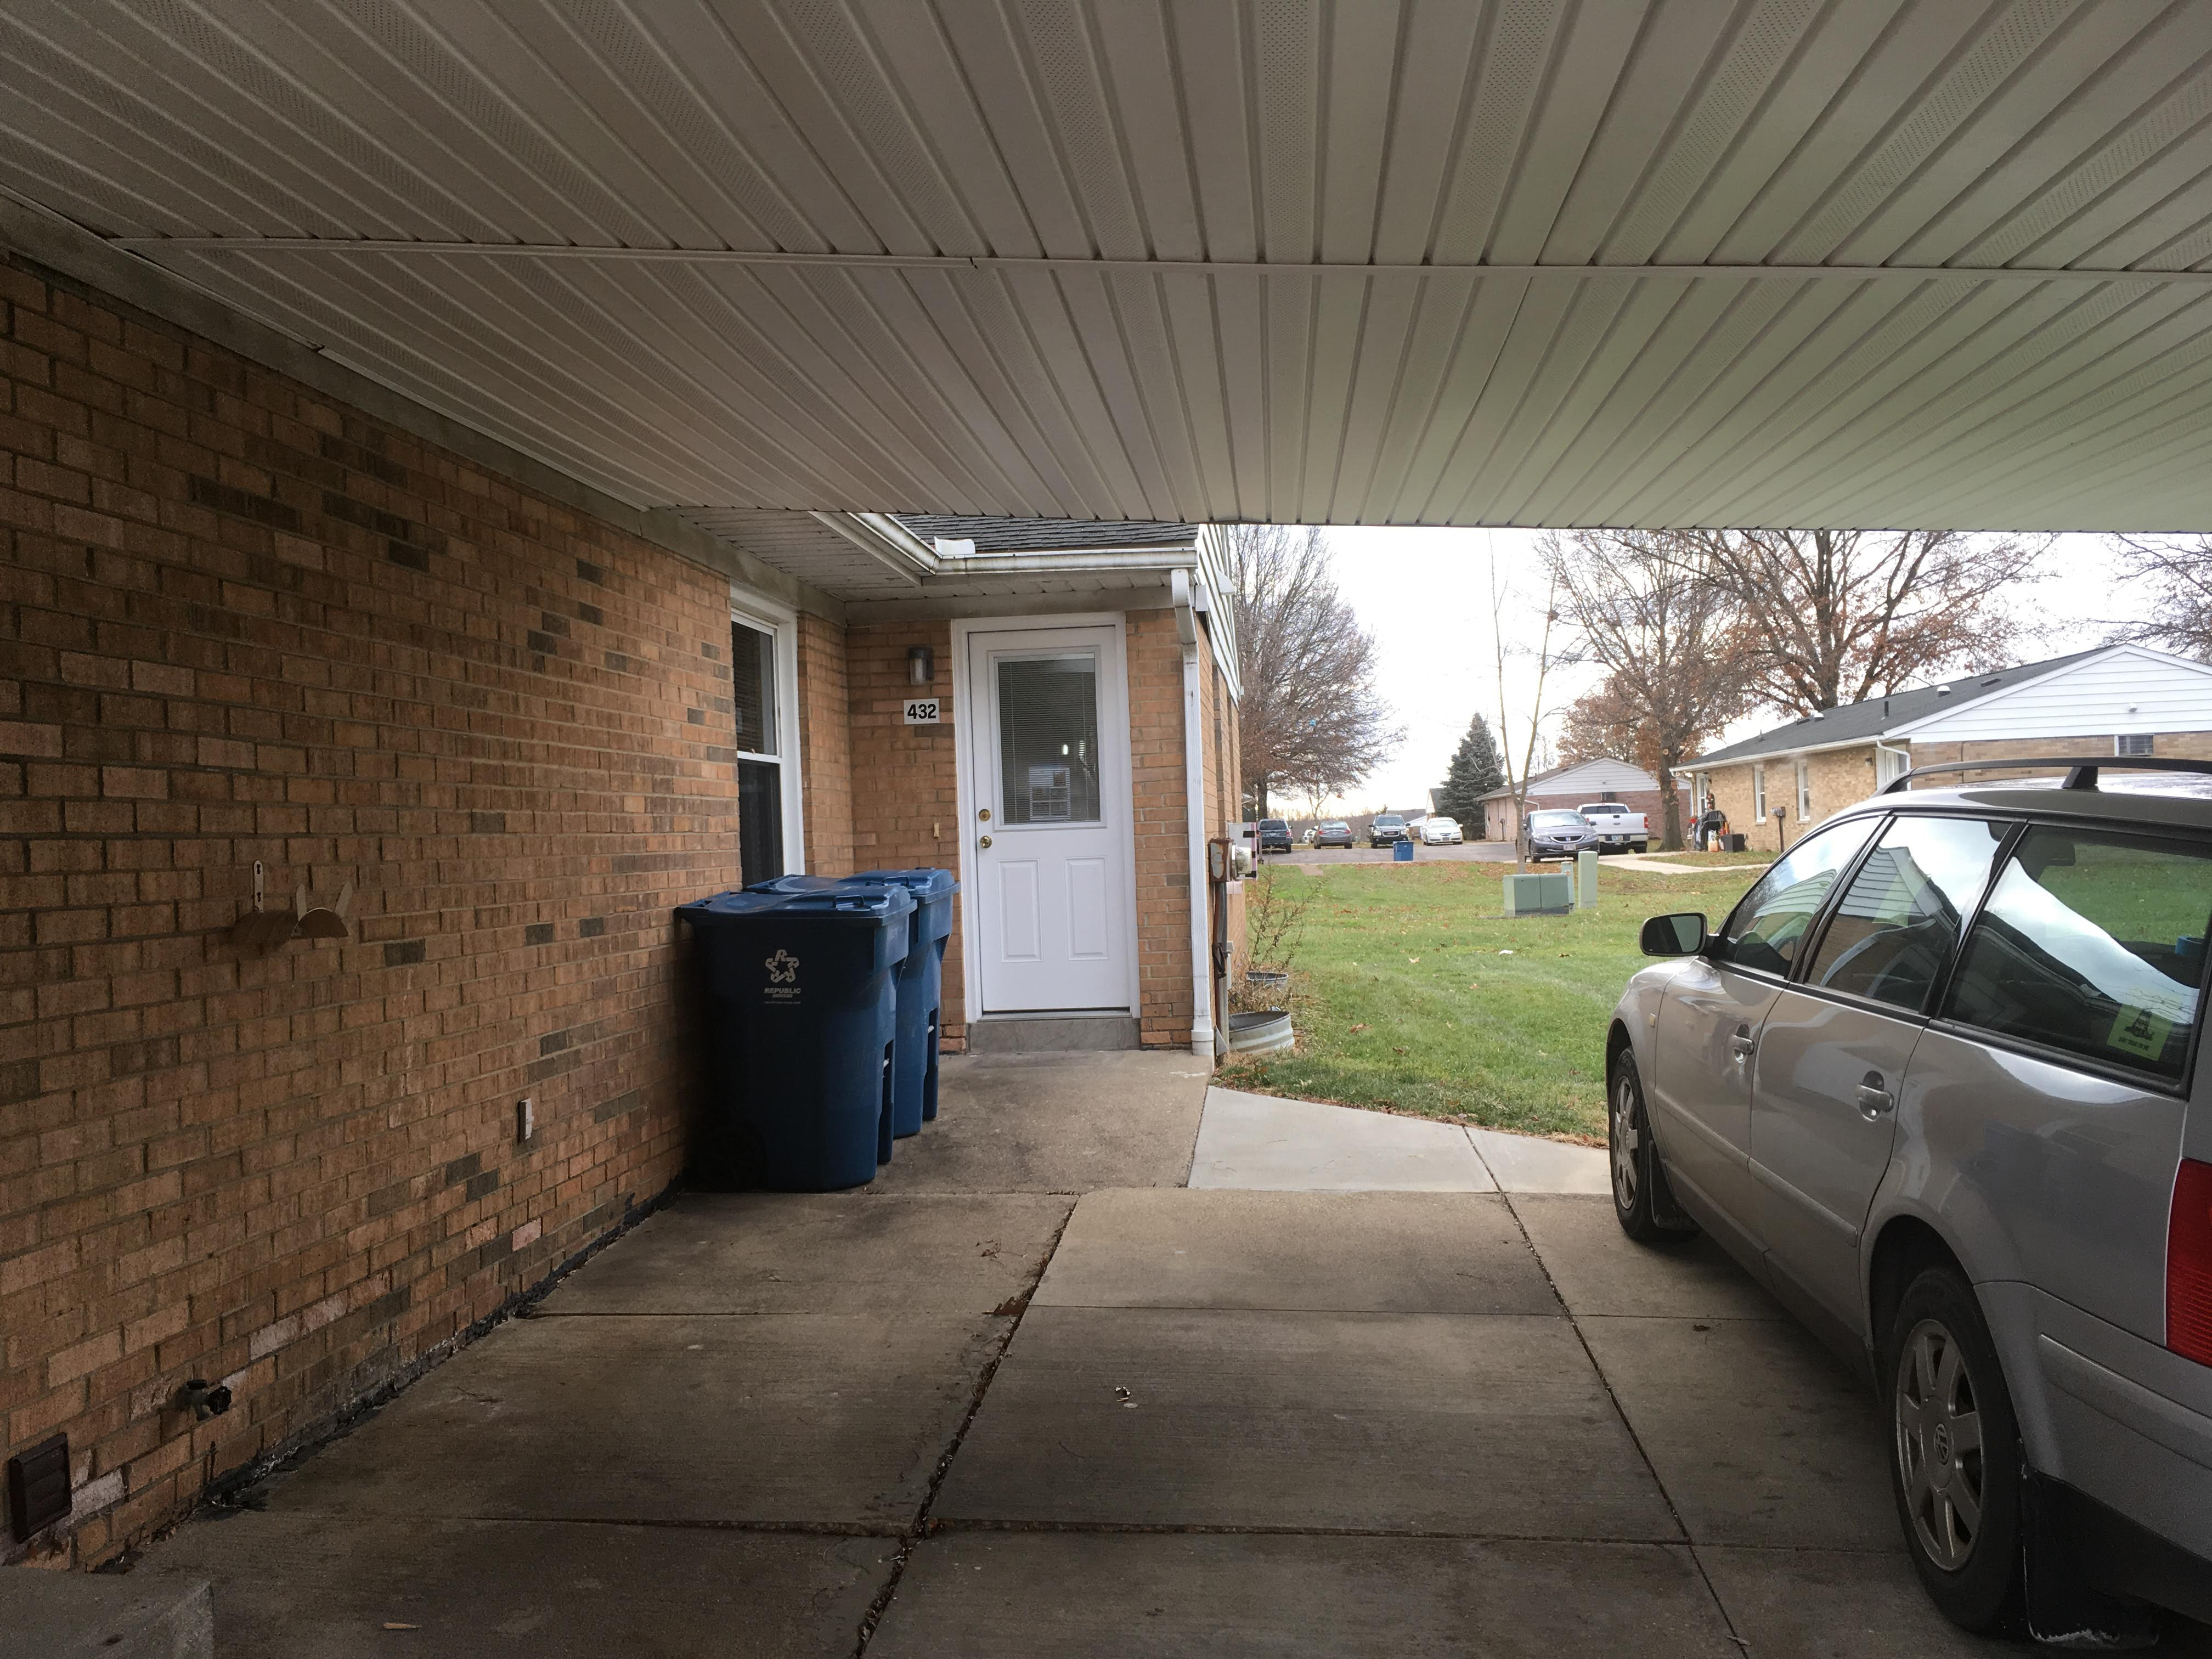 2 bedroom duplex non-smoking, basement carport